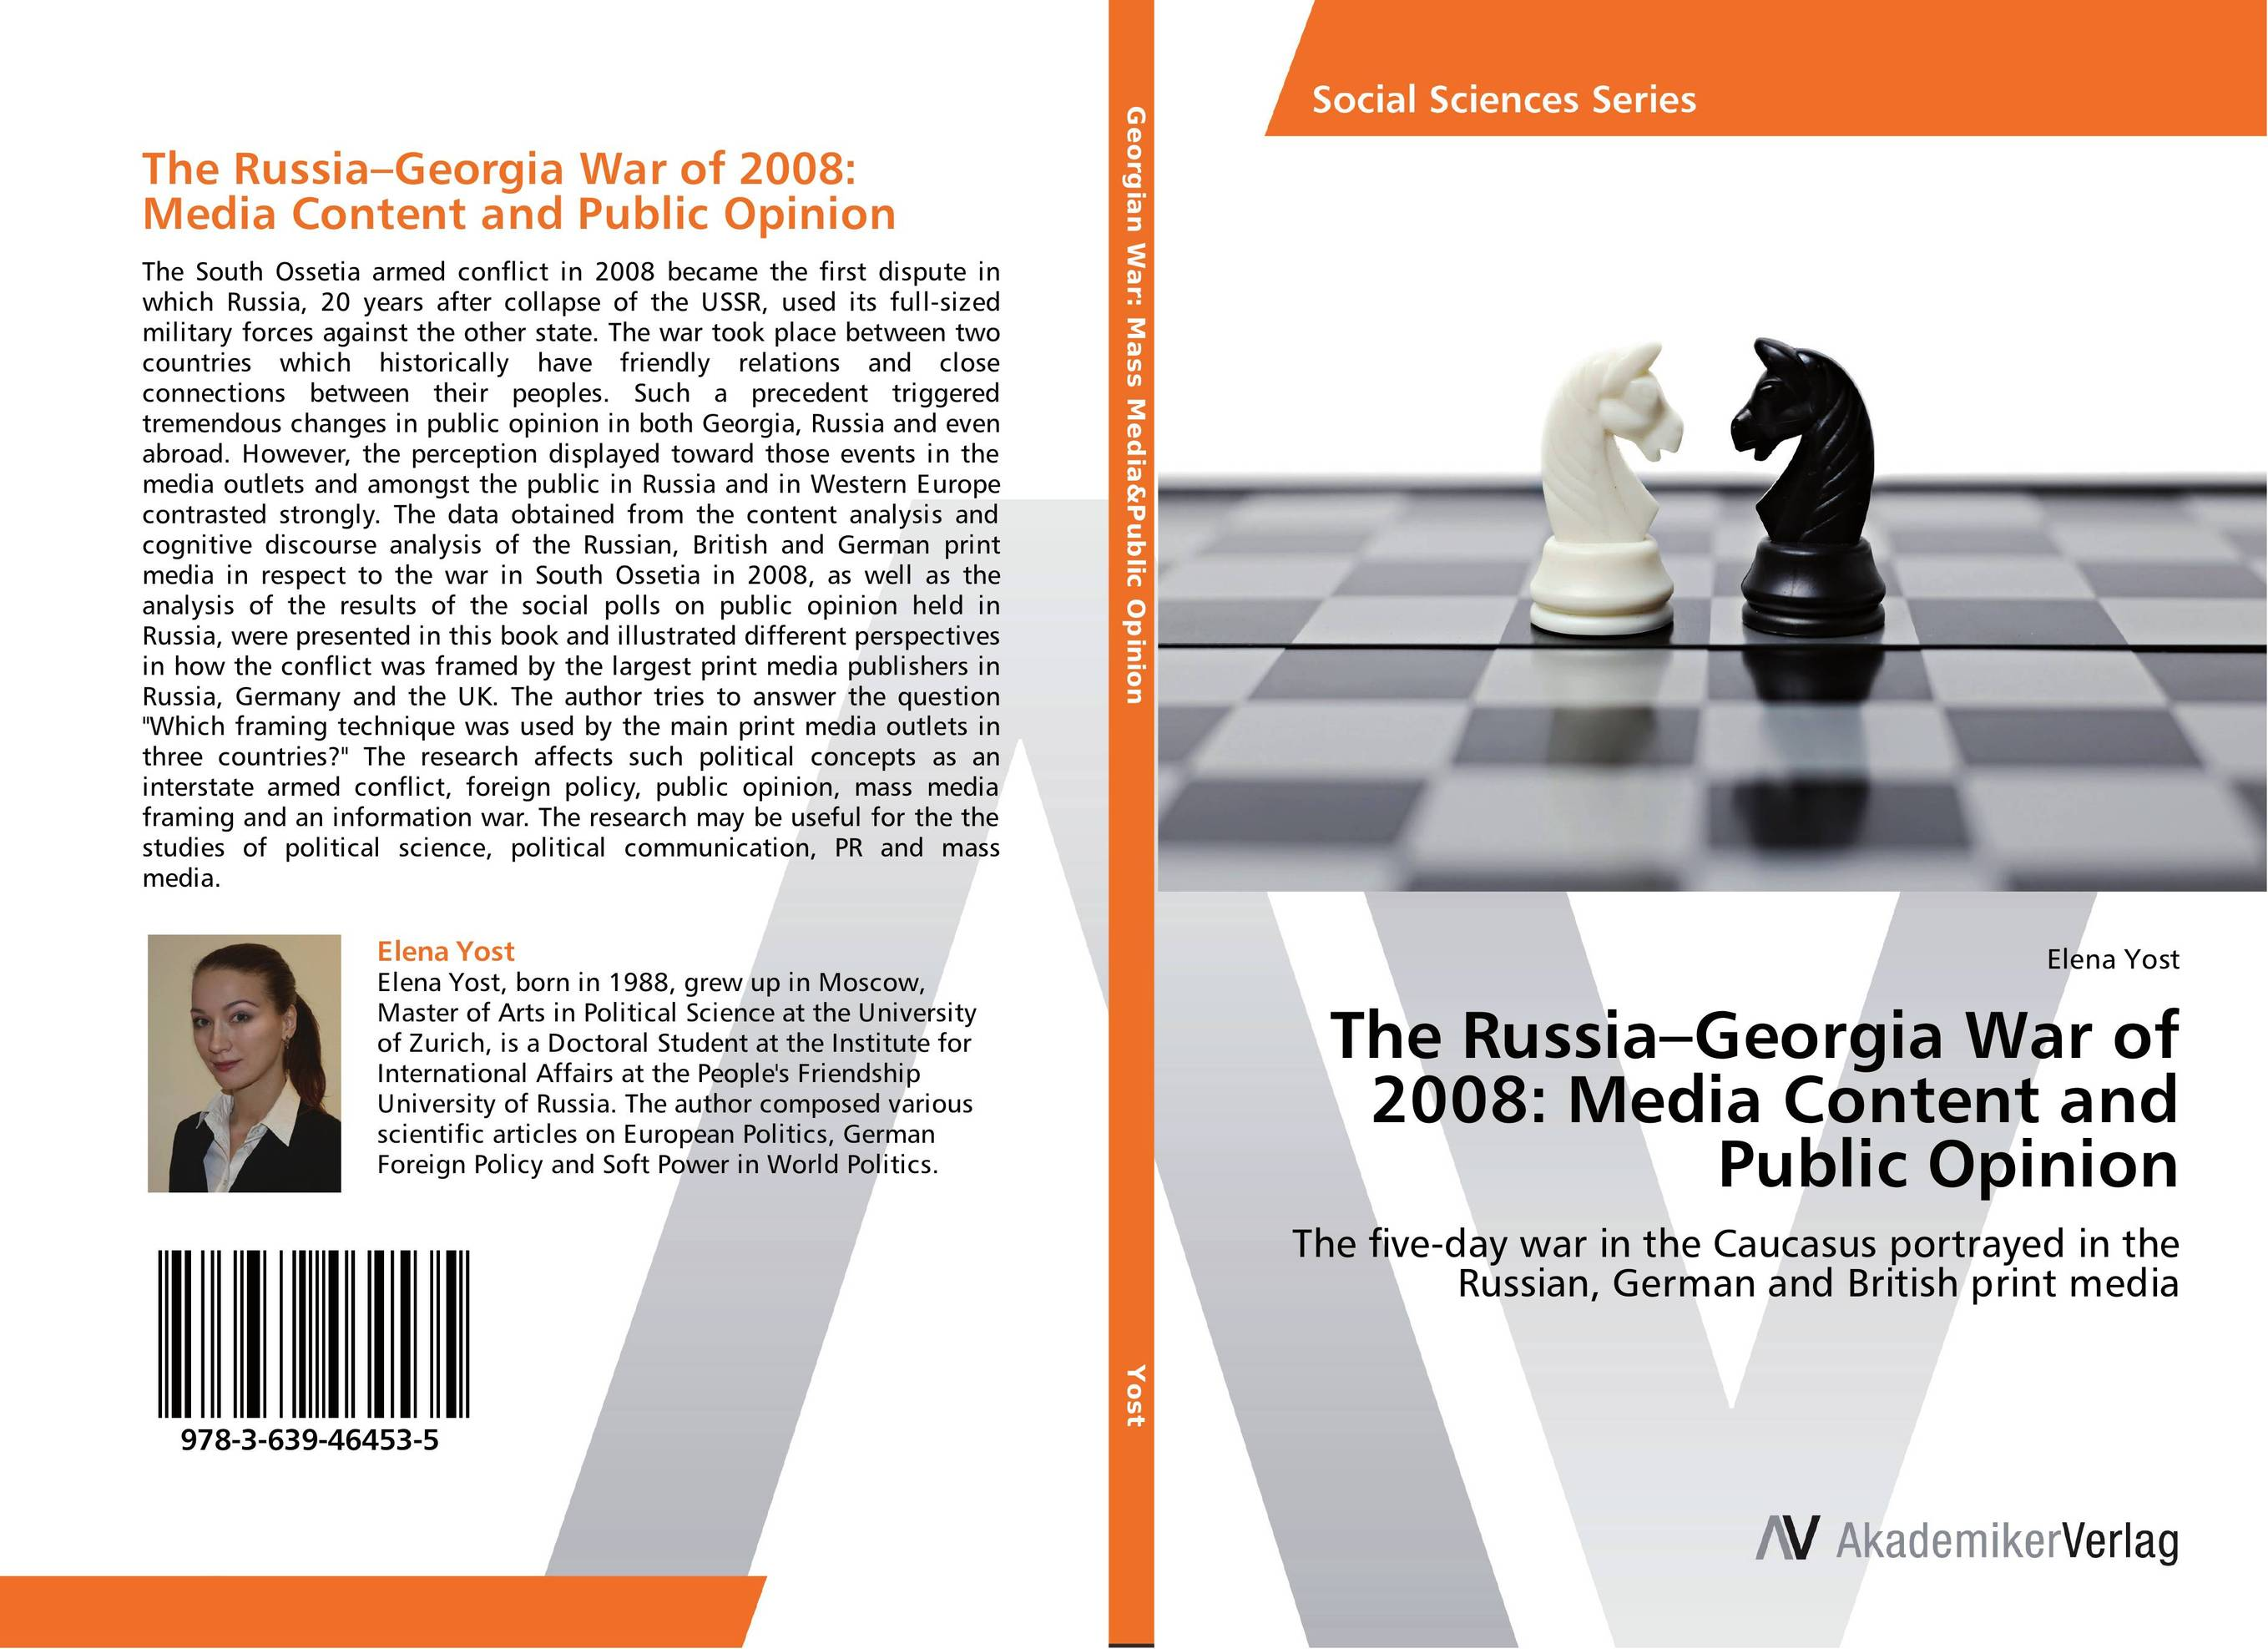 The Russia–Georgia War of 2008: Media Content and Public Opinion shakespeare after mass media [9780312294540]